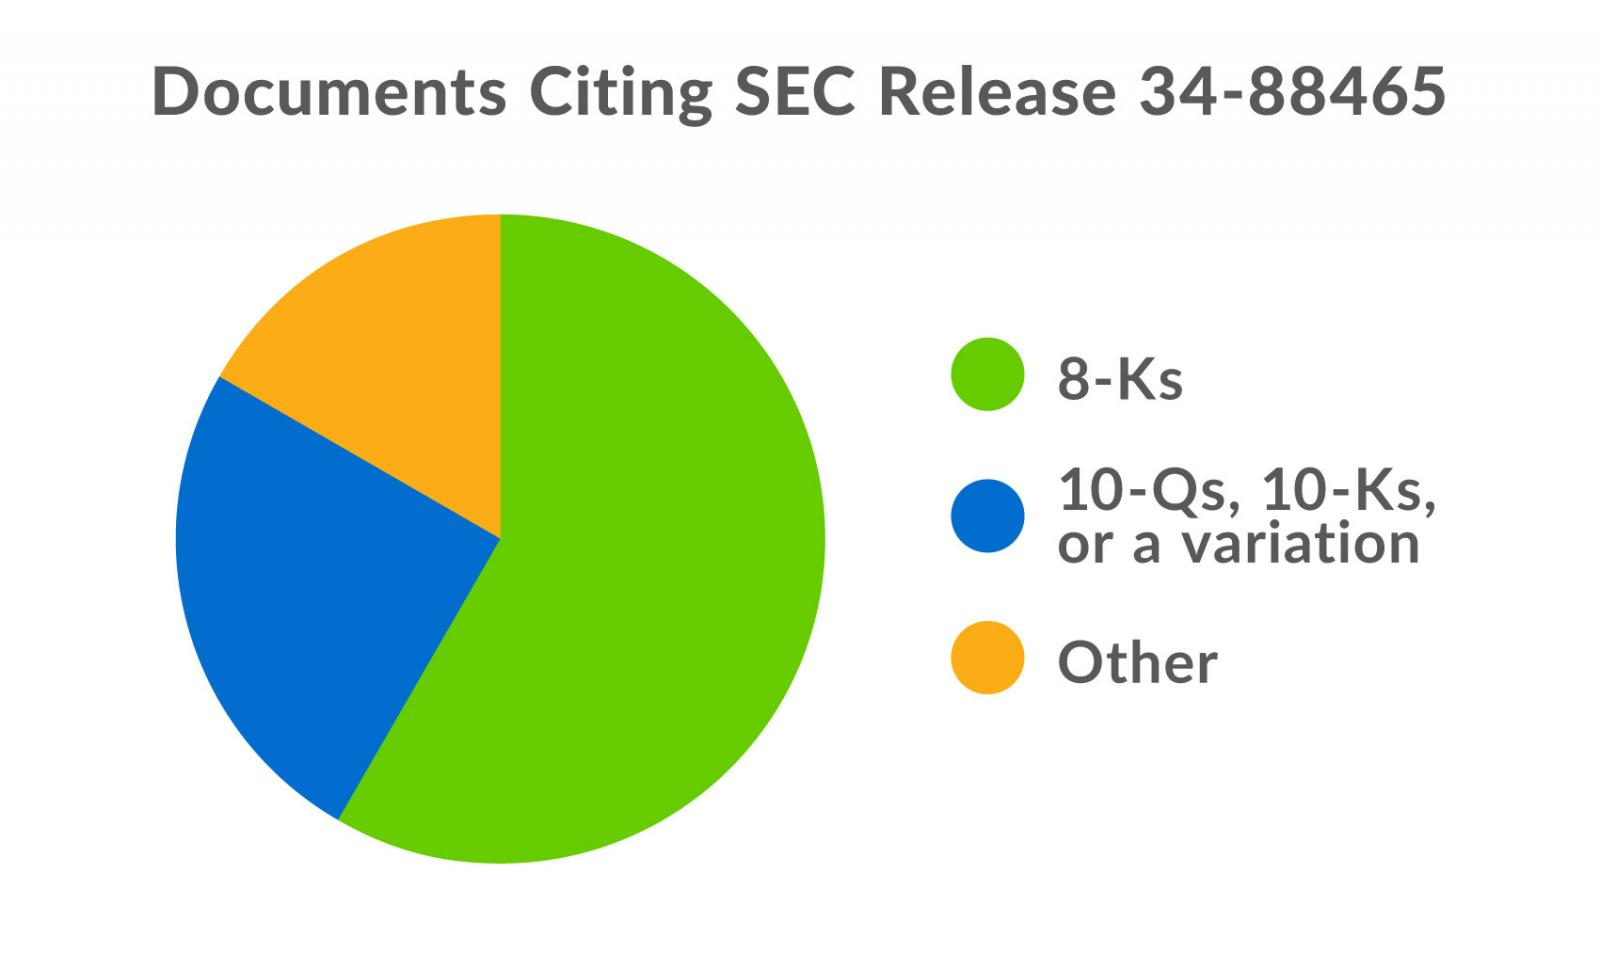 percentage of filing types citing SEC Release 34-88465